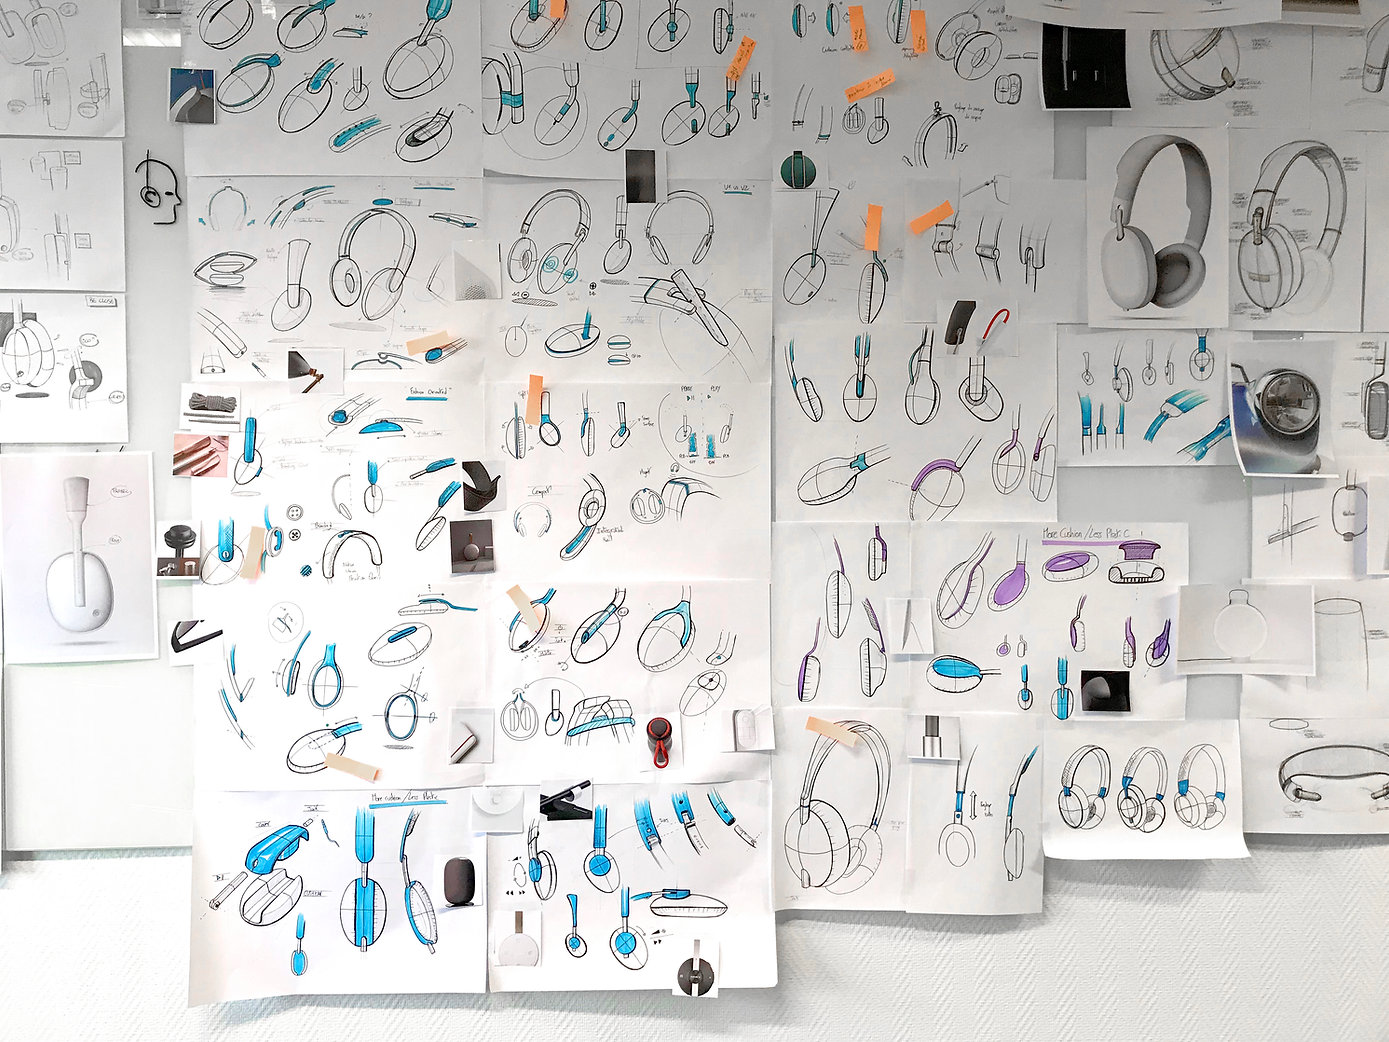 Ideation, Concept, Sketches, Industrial Design, Product Design, Doodles, Marker, Moodboard, Creativity, Concept, Headphones